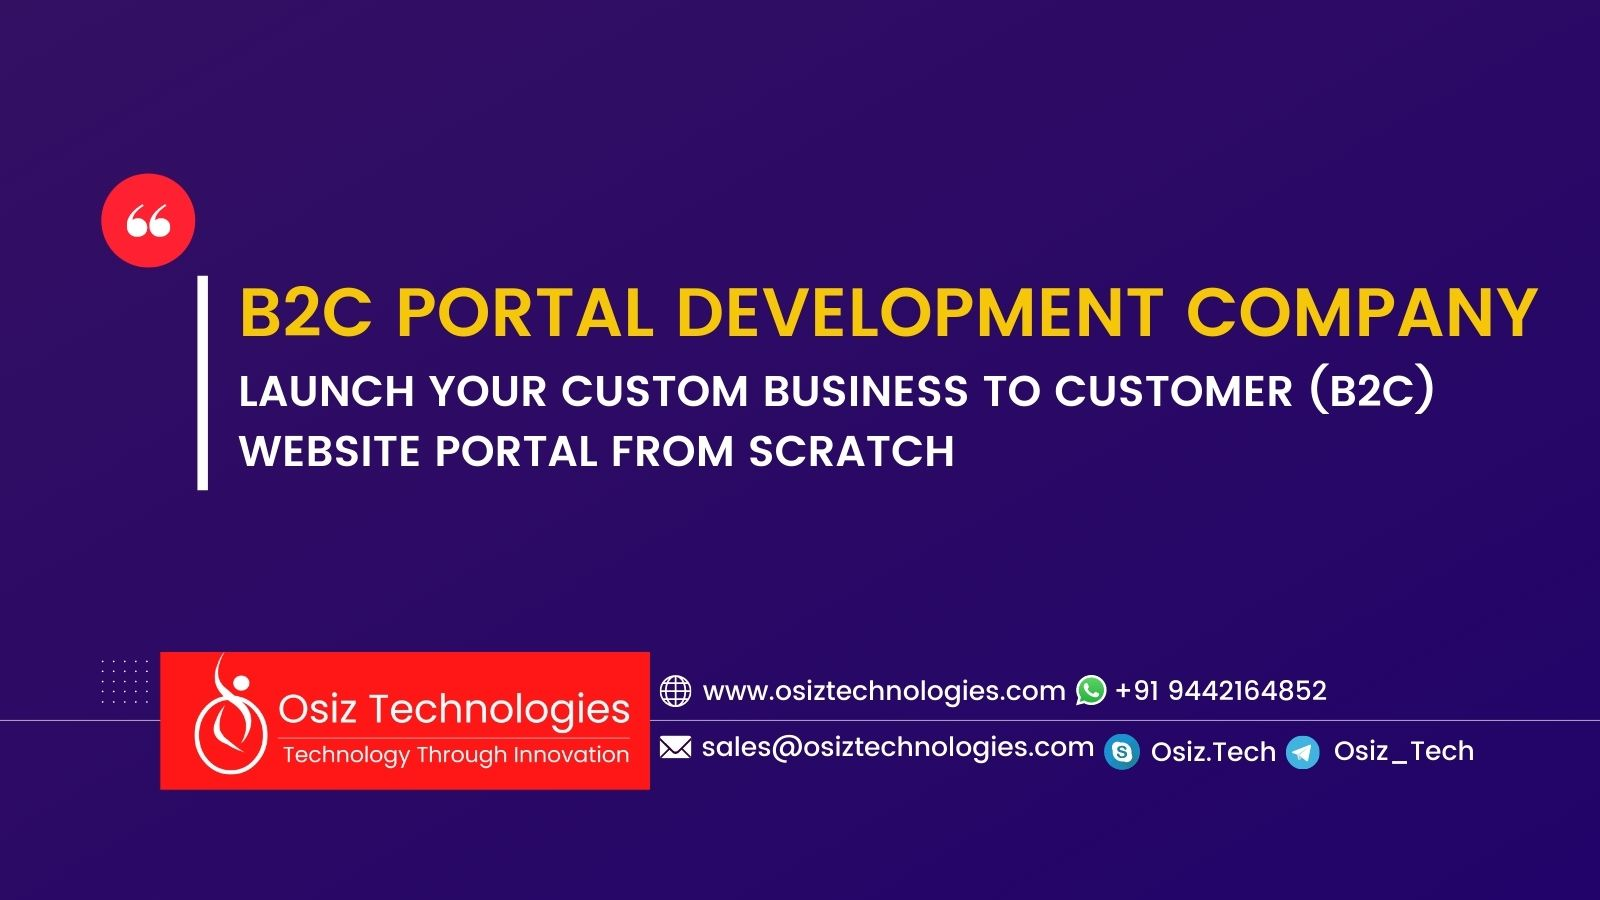 B2C PORTAL DEVELOPMENT COMPANY - BUILD YOUR CUSTOM BUSINESS TO CUSTOMER (B2C) WEBSITE PORTAL